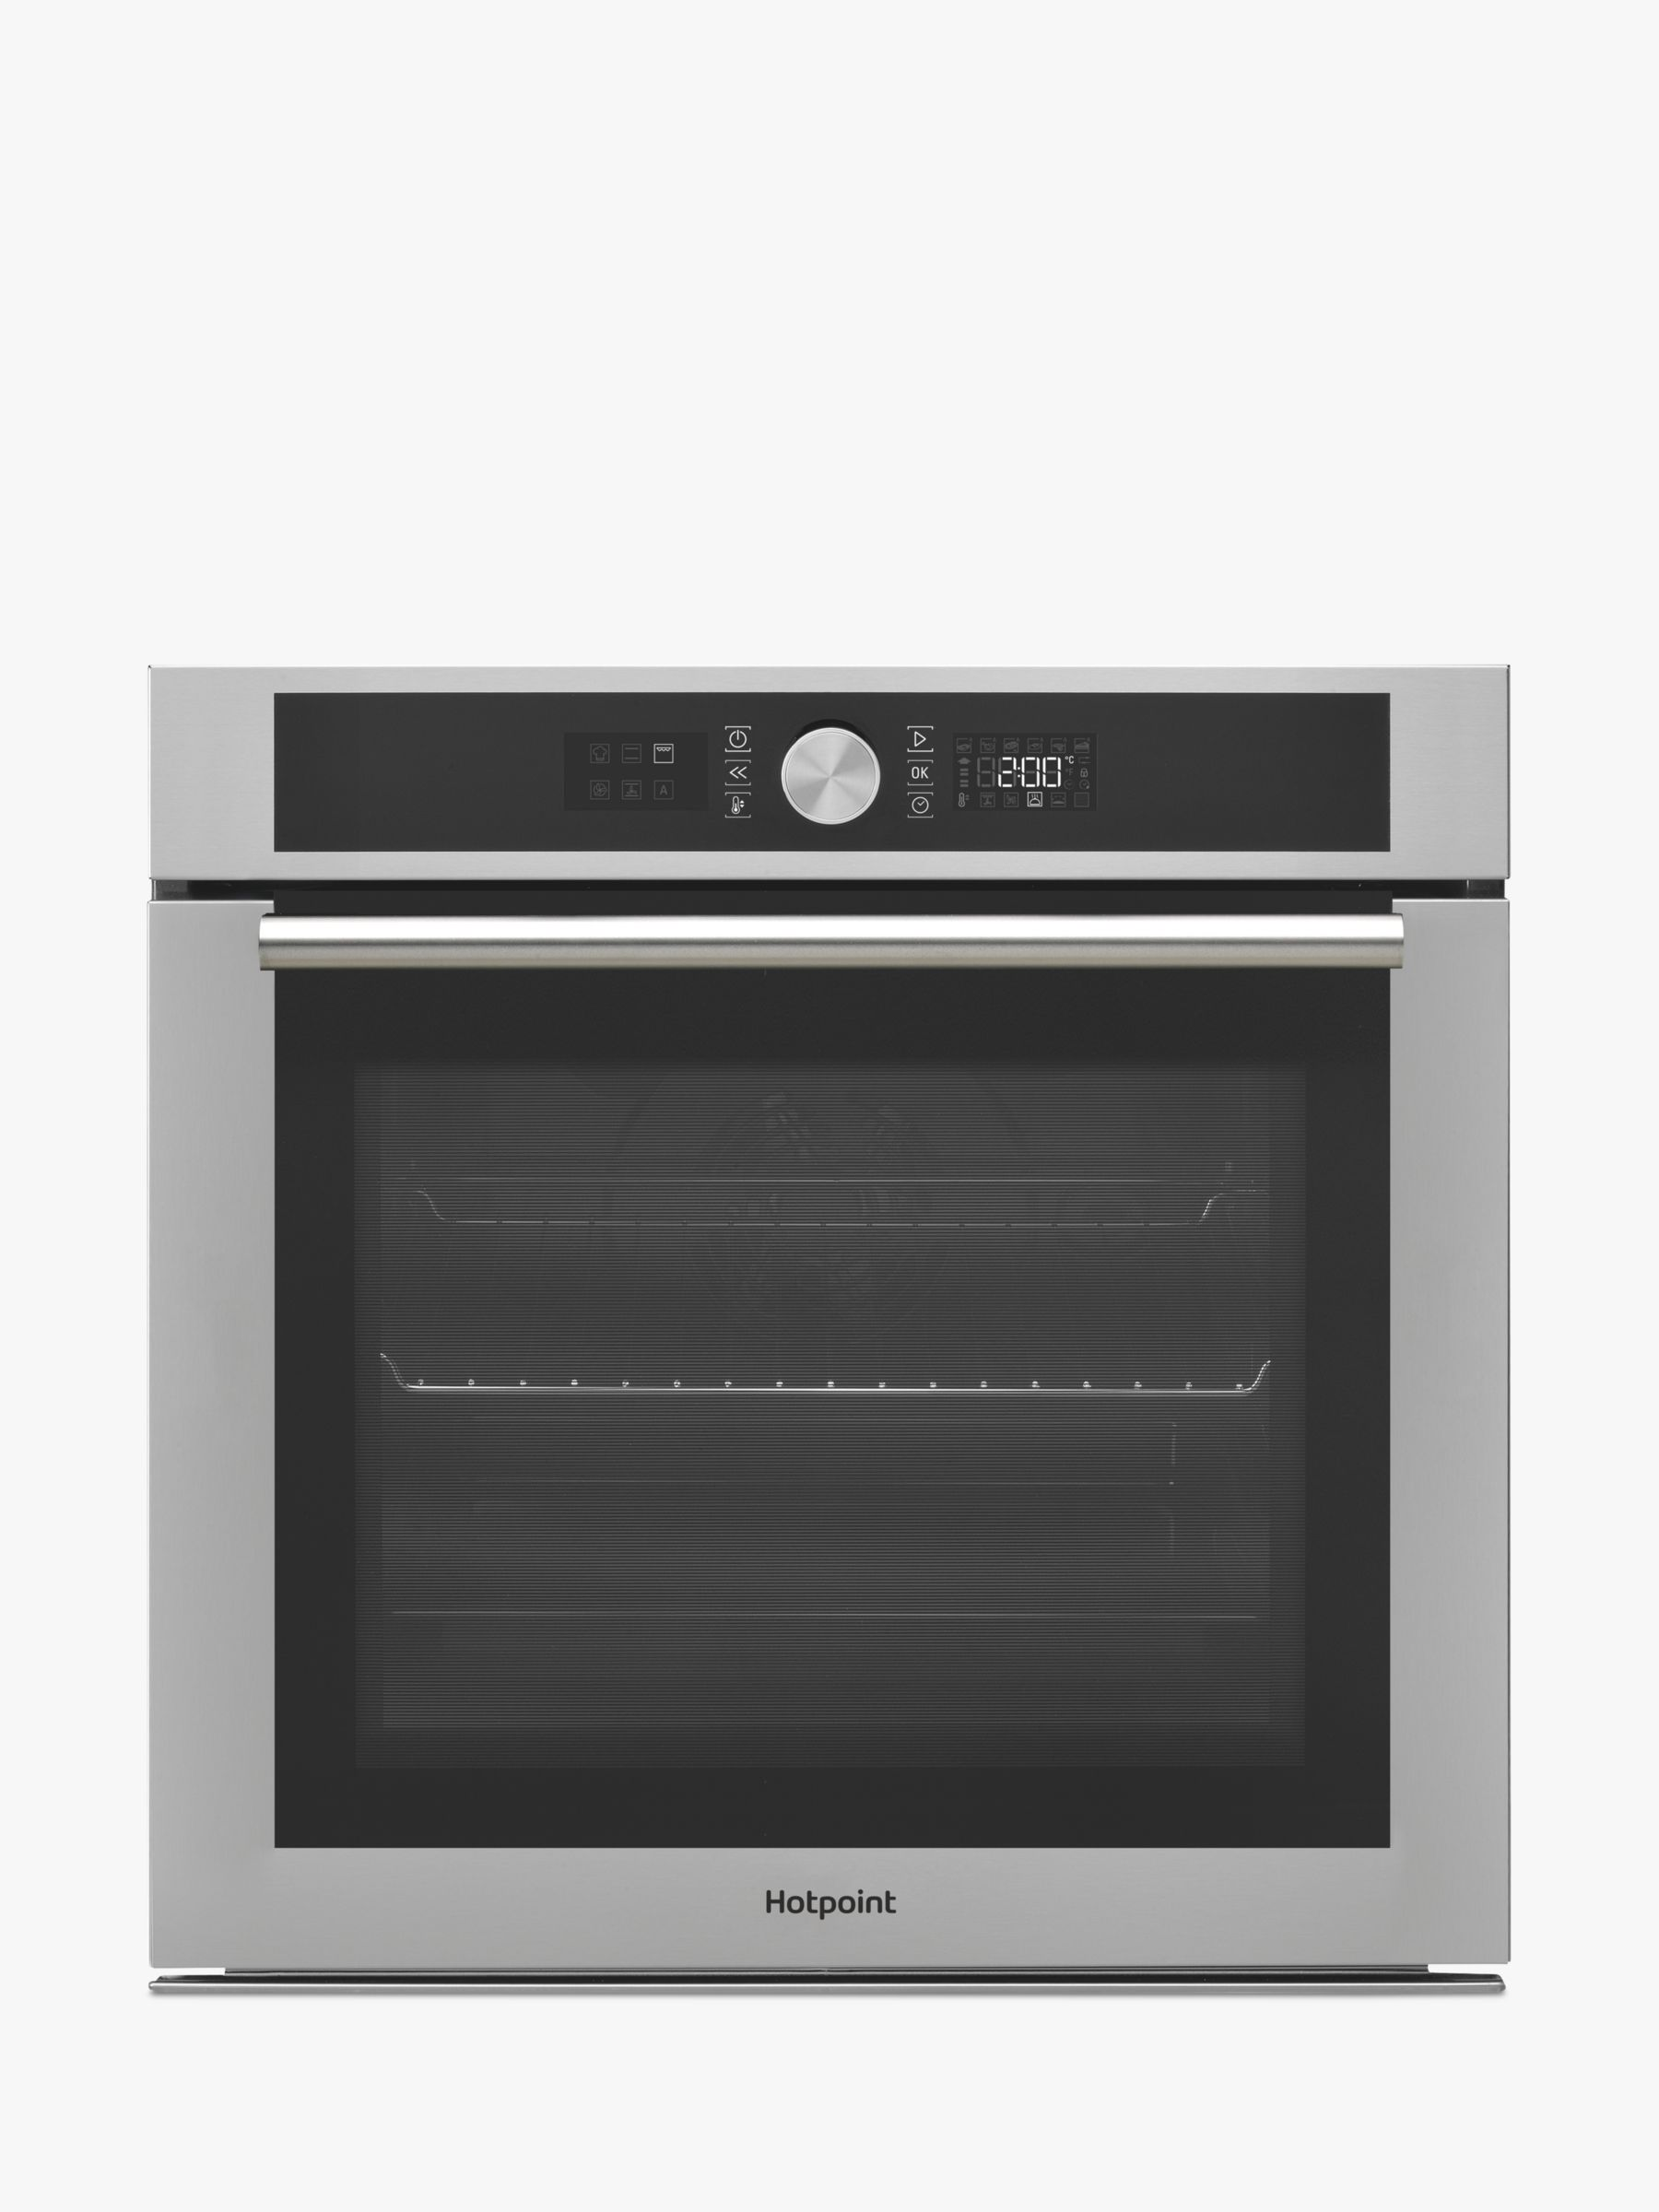 Hotpoint Hotpoint SI4854PIX Built-In Electric Single Oven, Stainless Steel